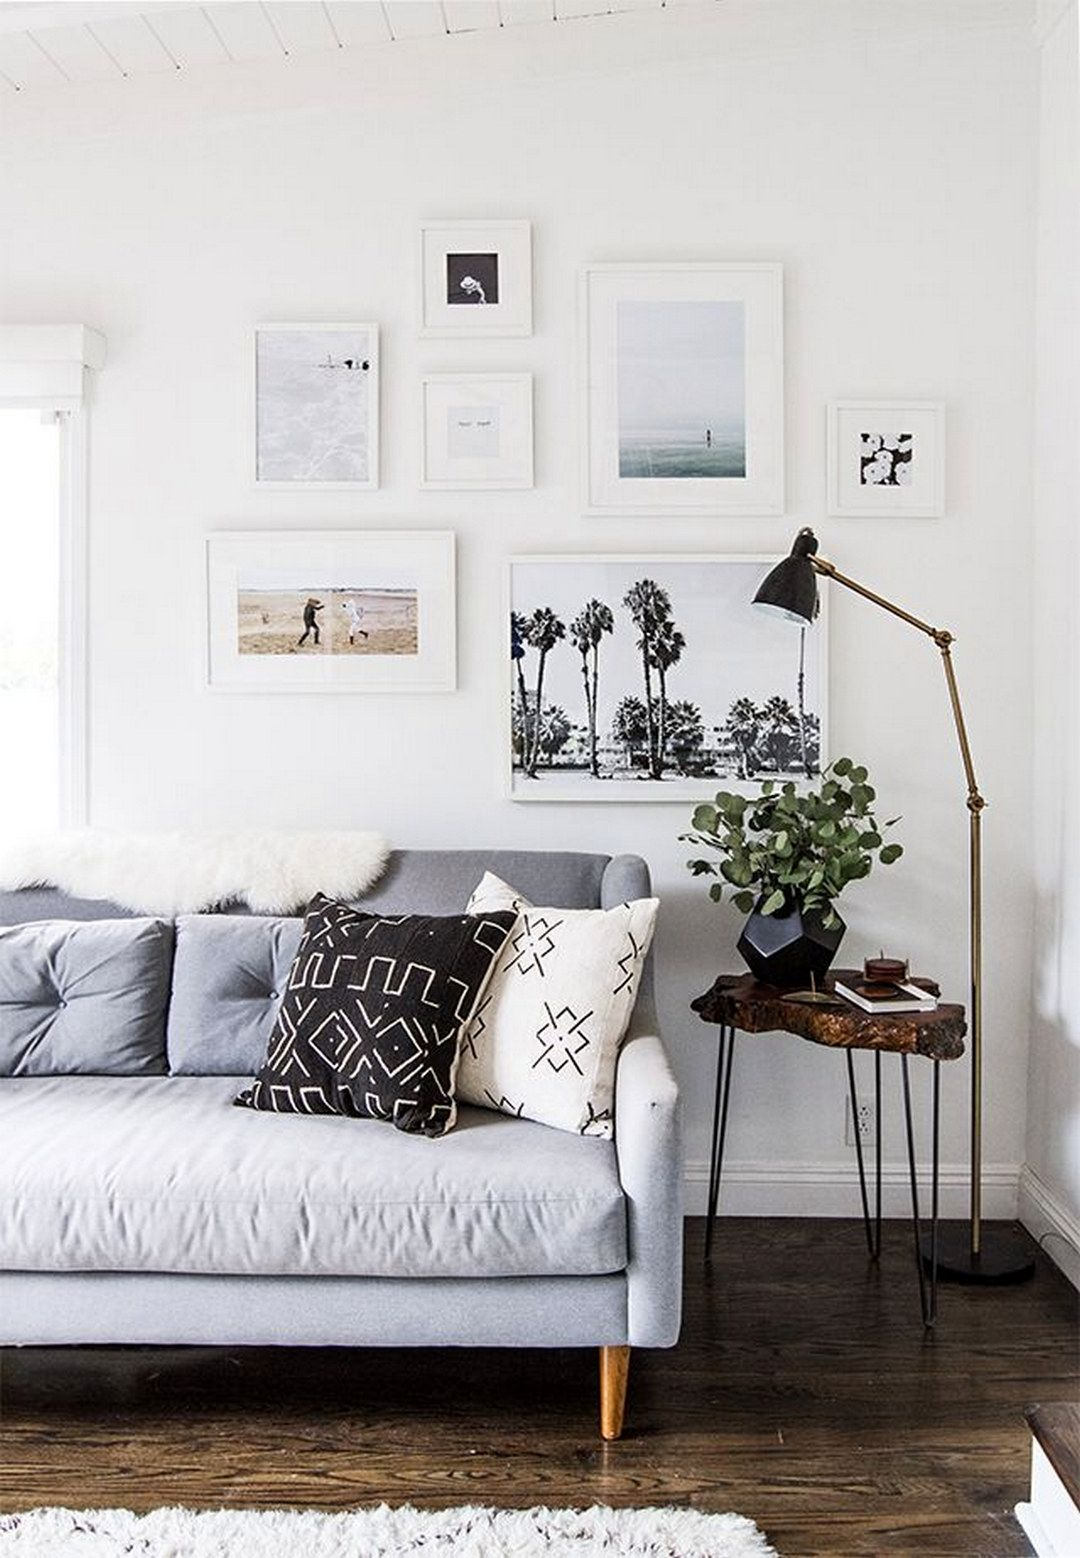 Diy Room Decor Ideas That Are Basically Magic 2020 Wetellyouhow